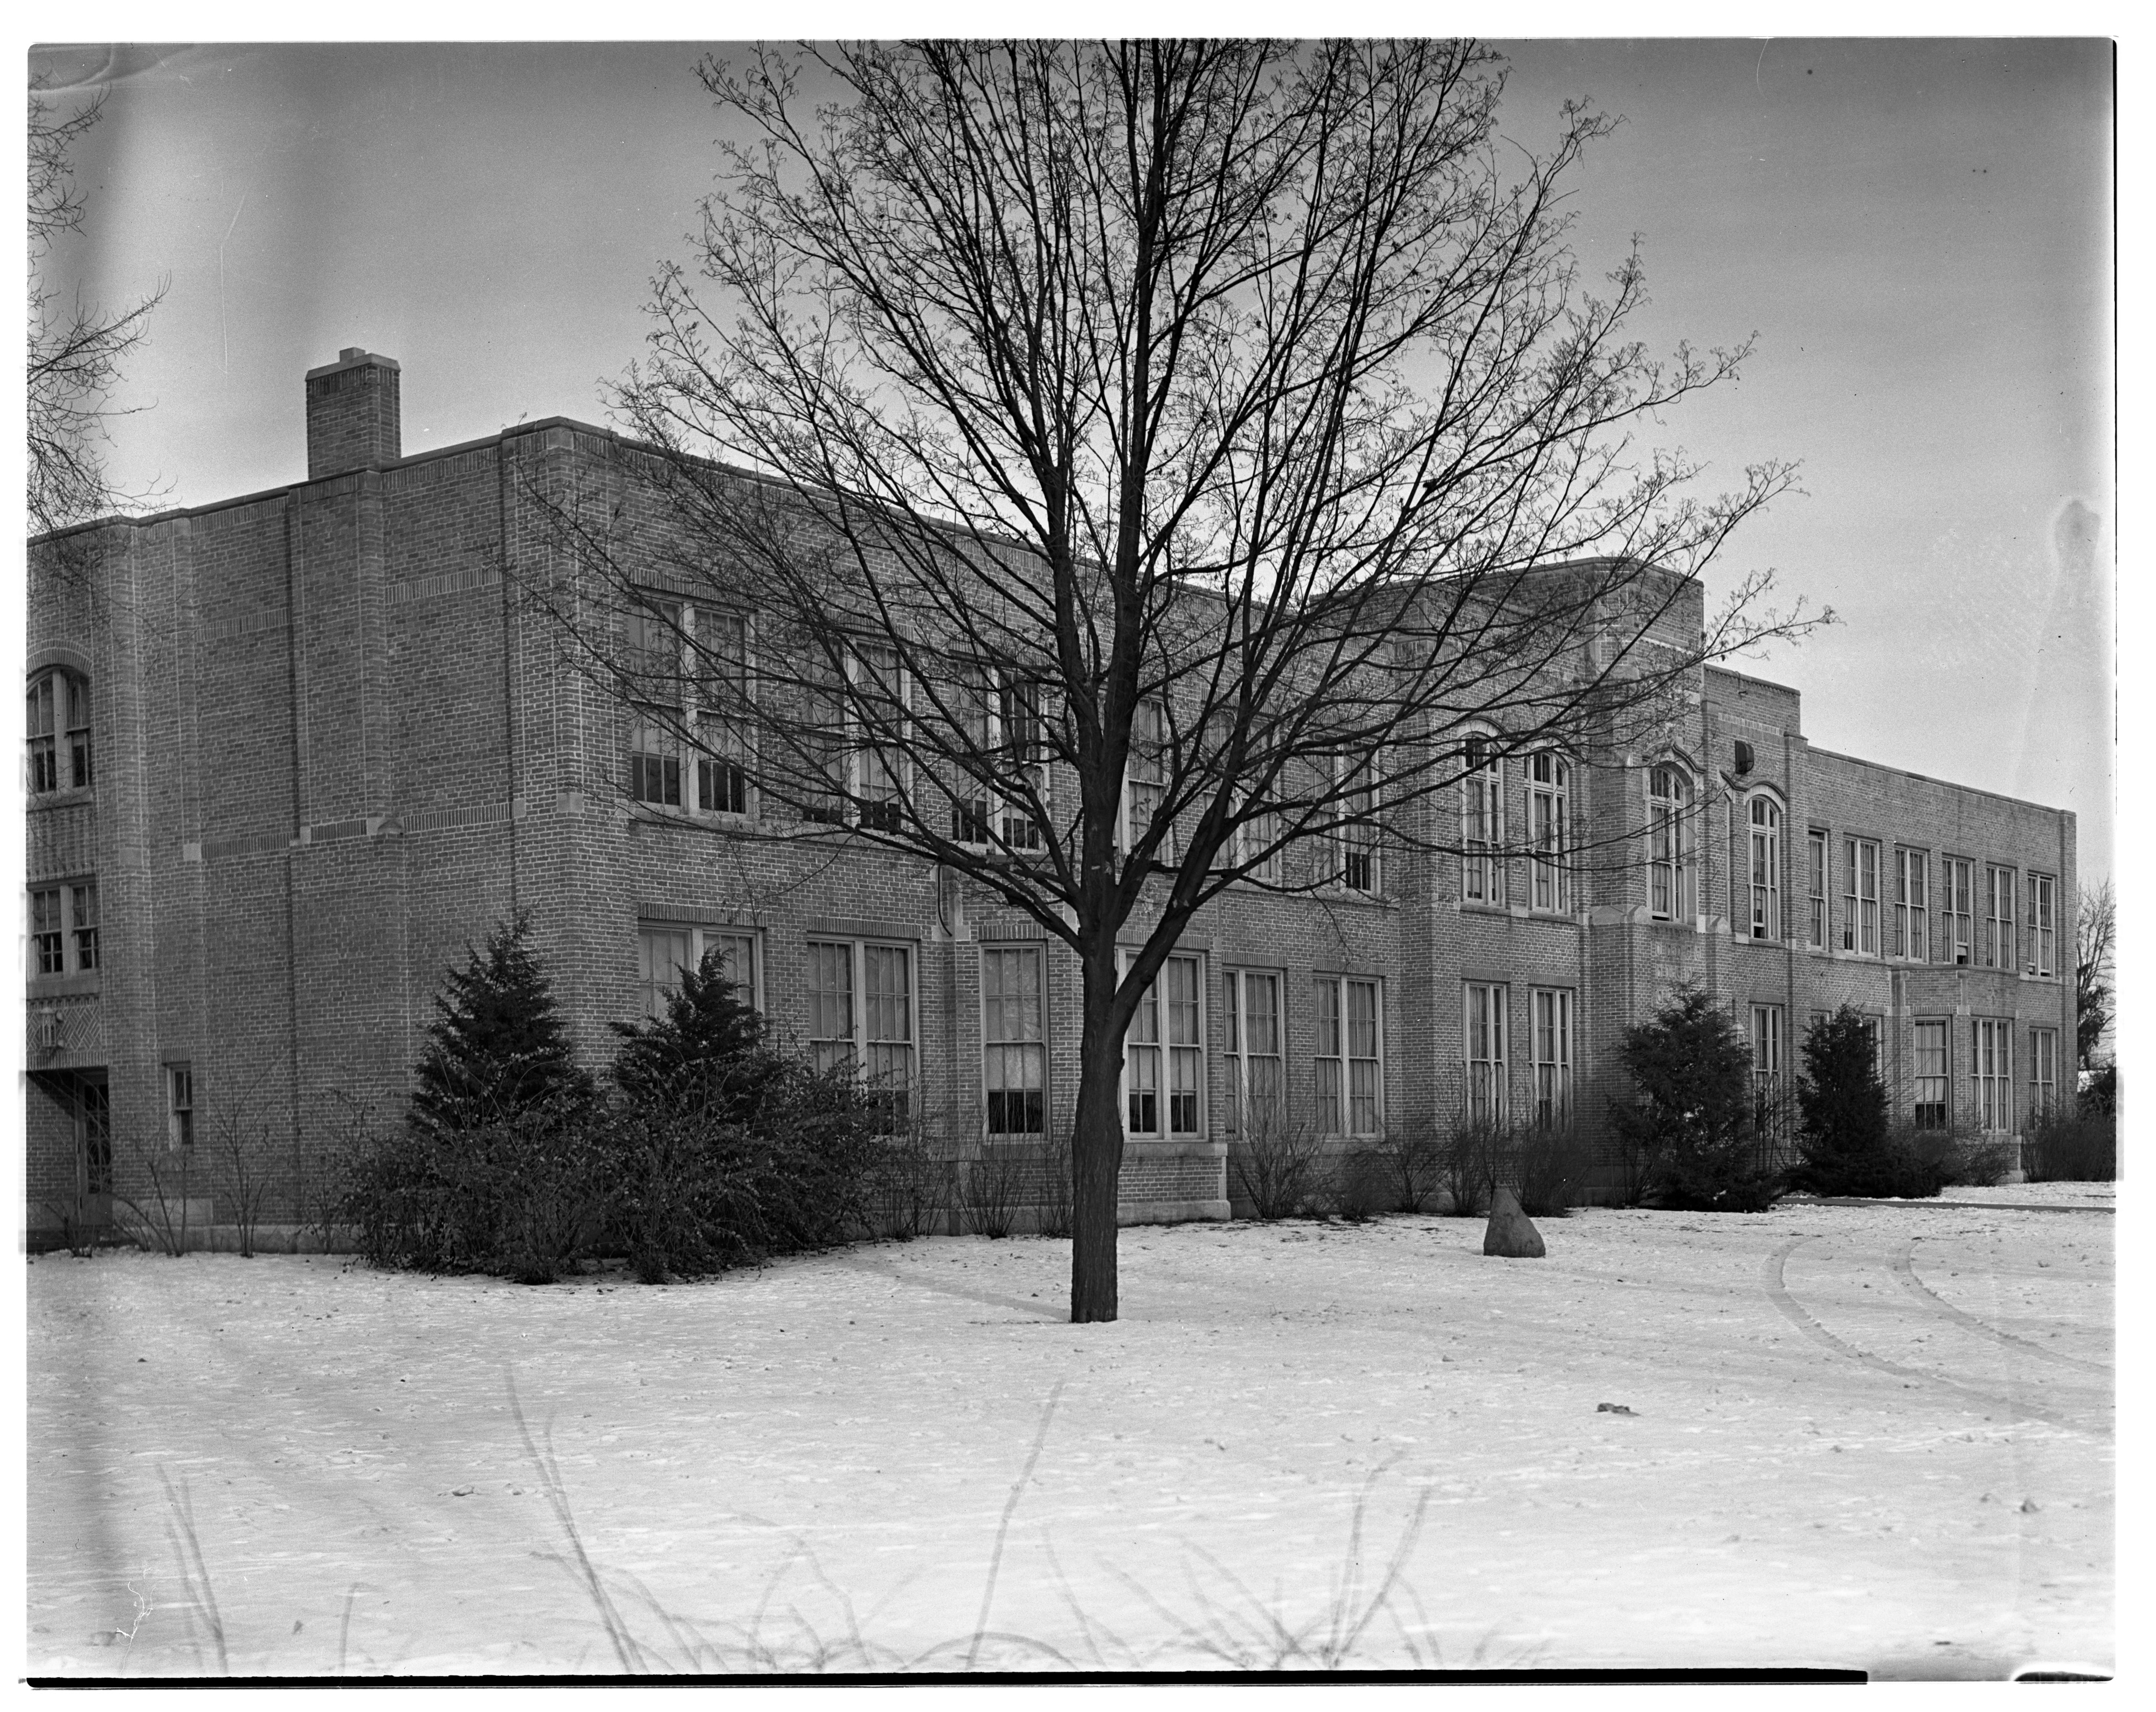 Dundee High School image